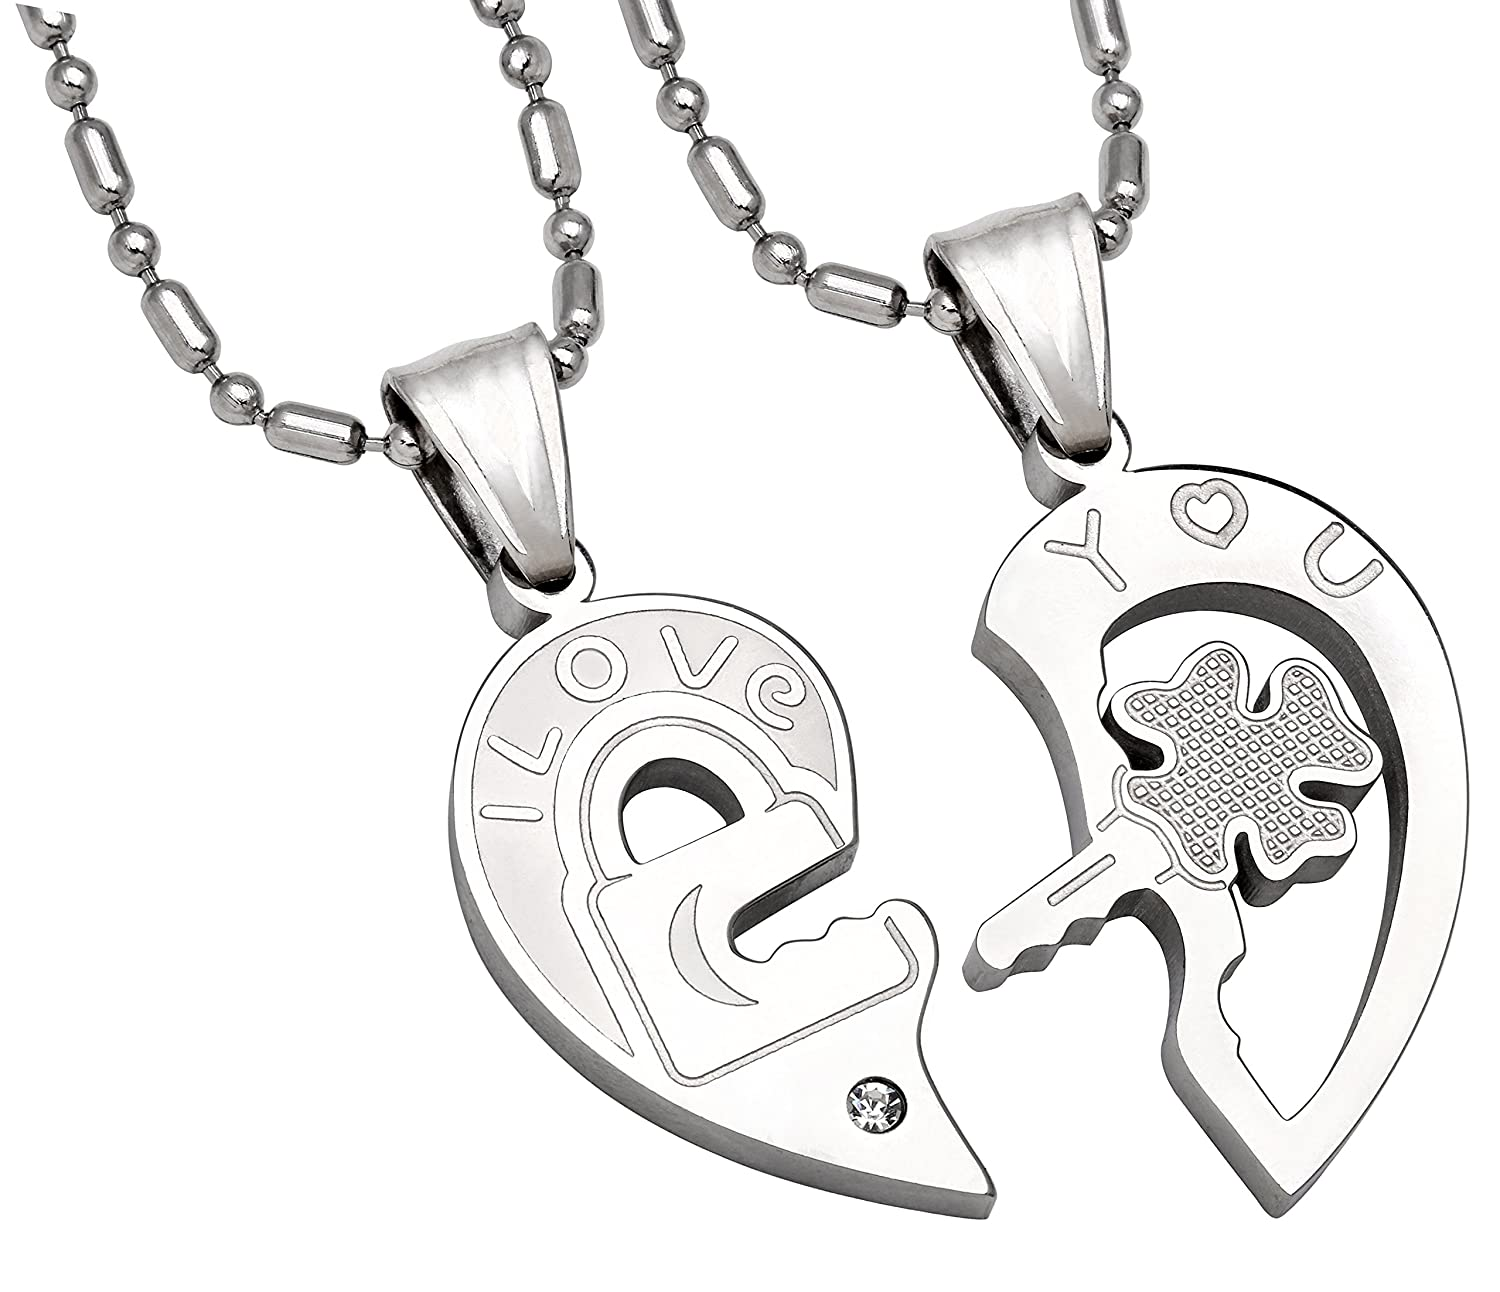 fine shipping chains women heart plated stone top sterling type cute necklace free silver pendant shop fashion quality charms valentines day jewellery collier charm inlaid jewelry floating beautiful femme